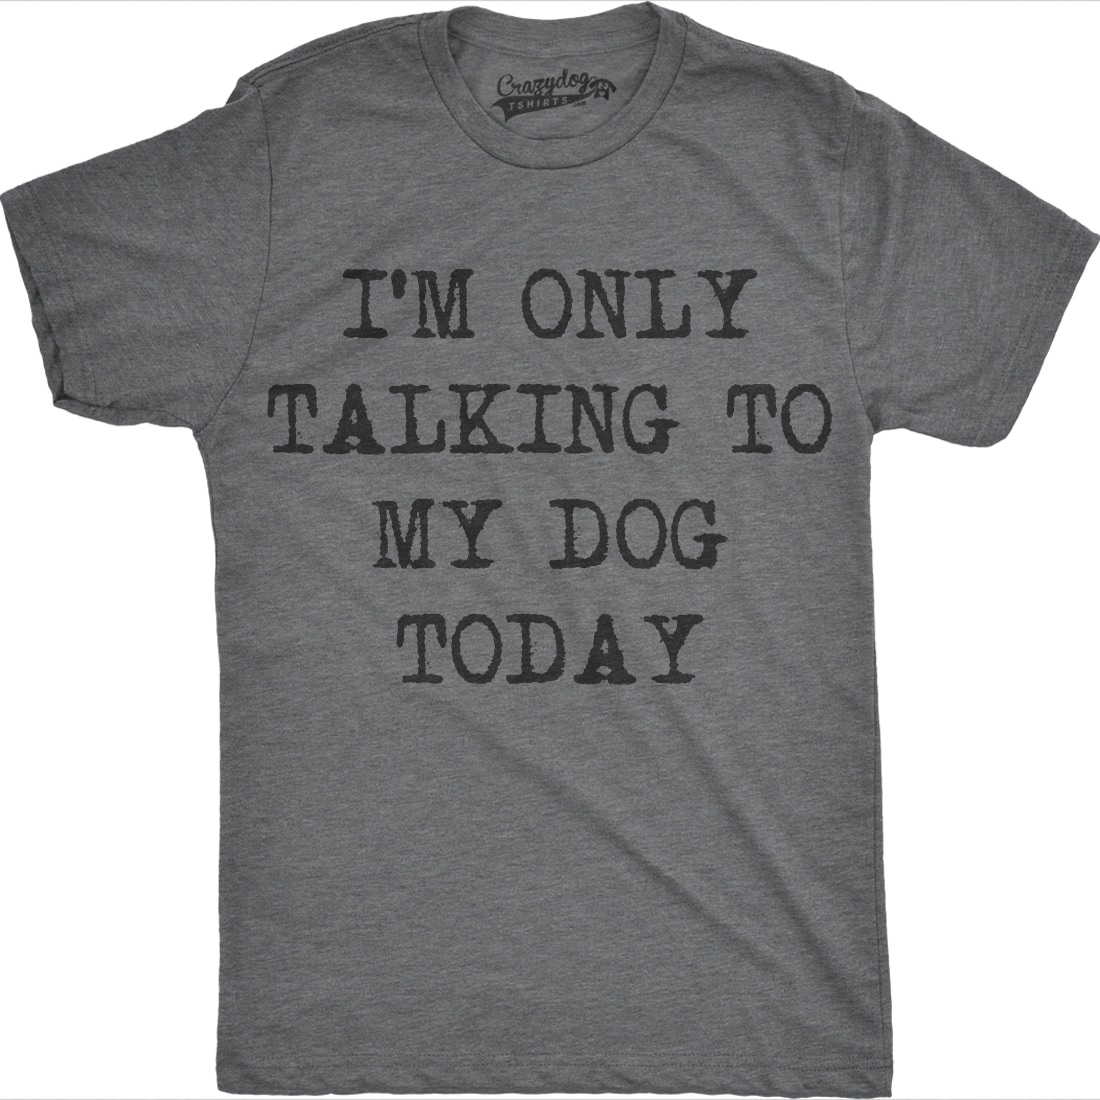 You Had Me at Woof T-Shirt Funny Cool Dog Lover Tee Top Ladies or Mens